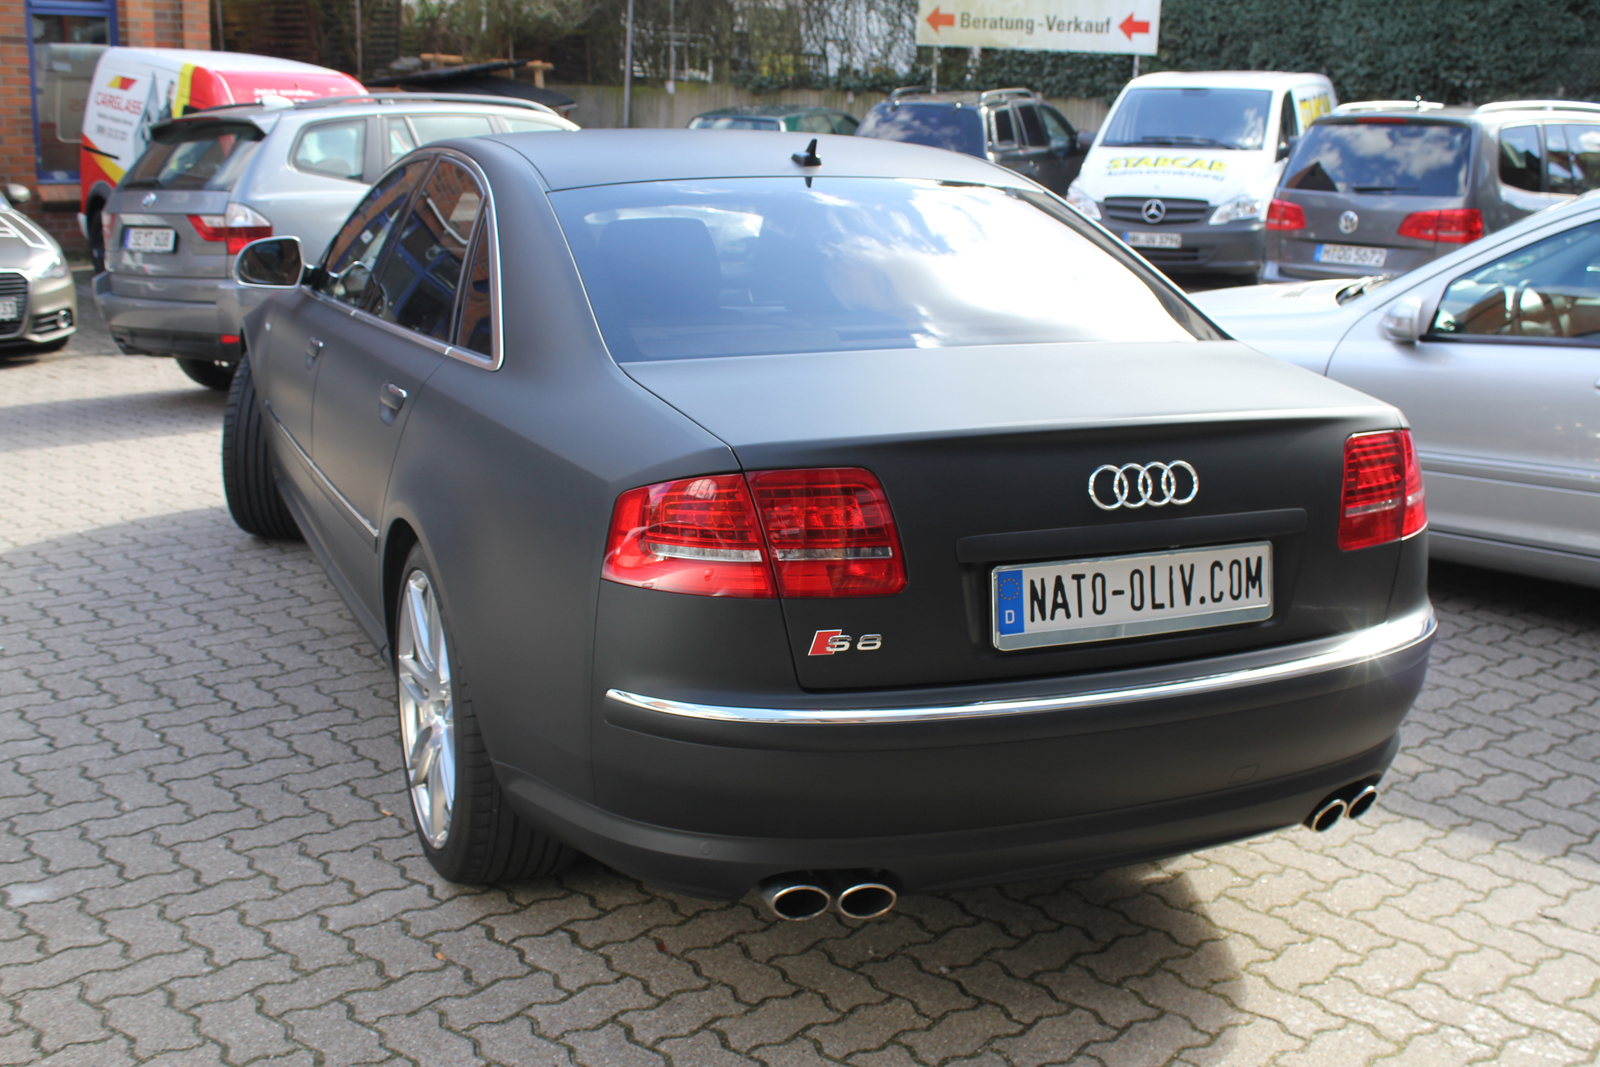 AUDI_S8_CAR-WRAPPING_SCHWARZ_MATT_05